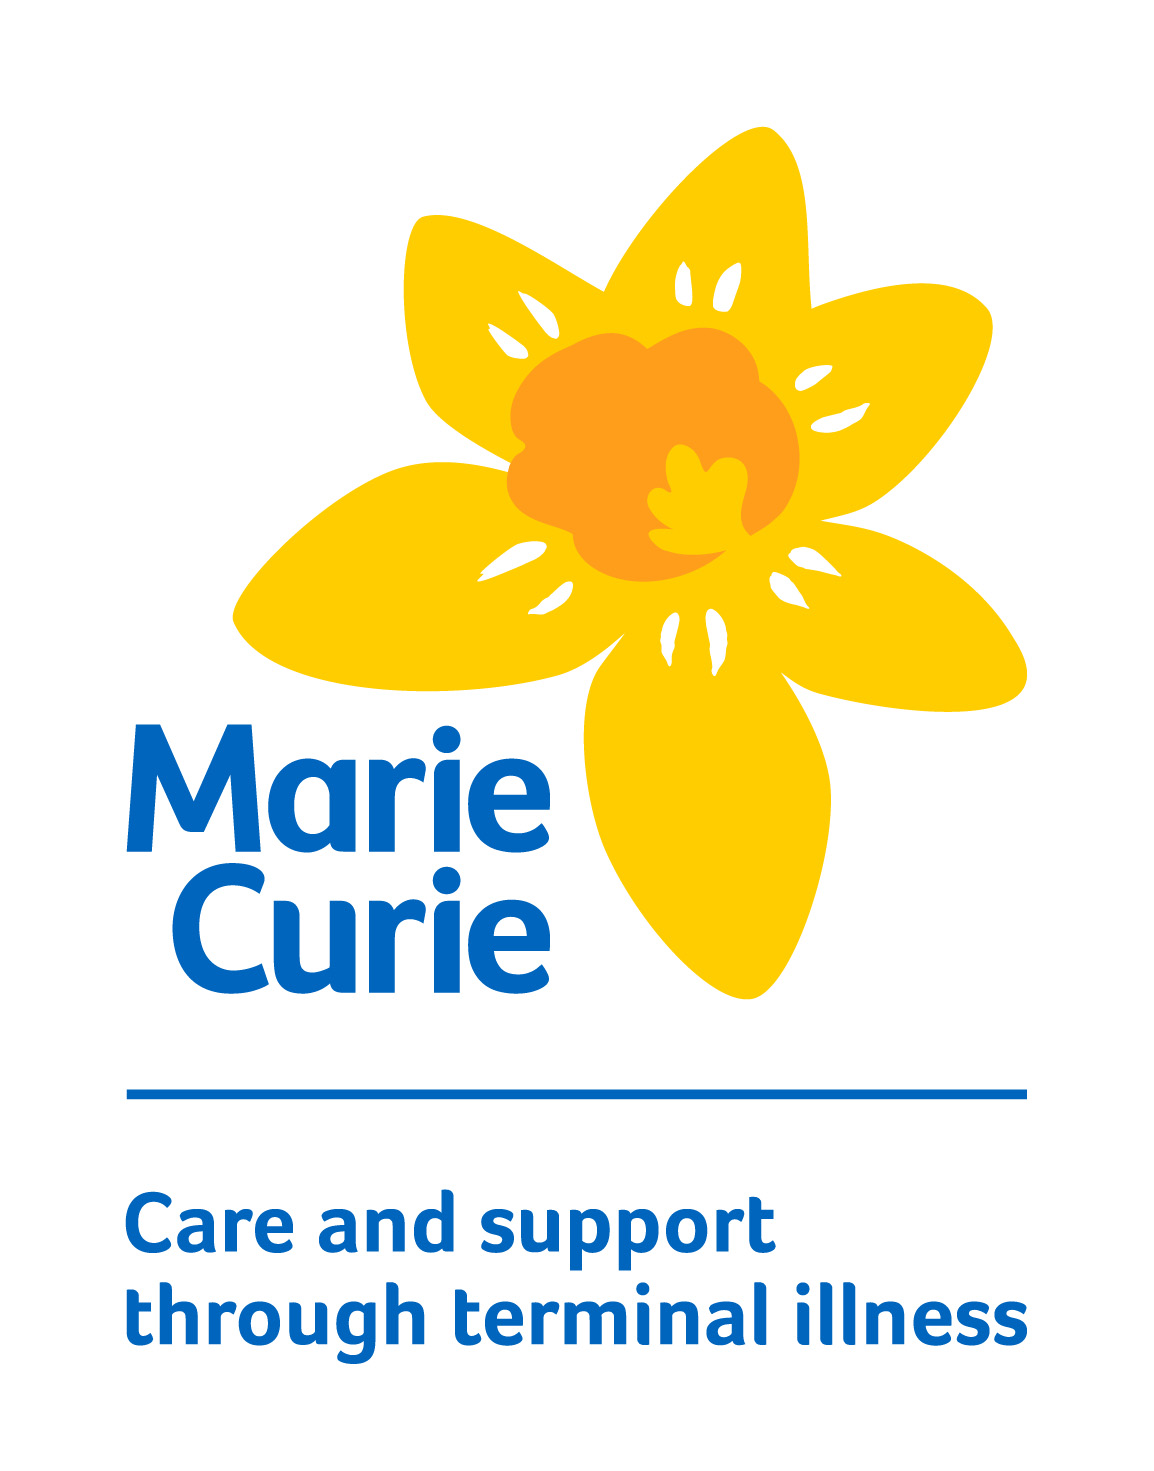 https://www.agcc.co.uk/uploaded_files/Northern-Star-Business-Awards-charities-Marie-Curie